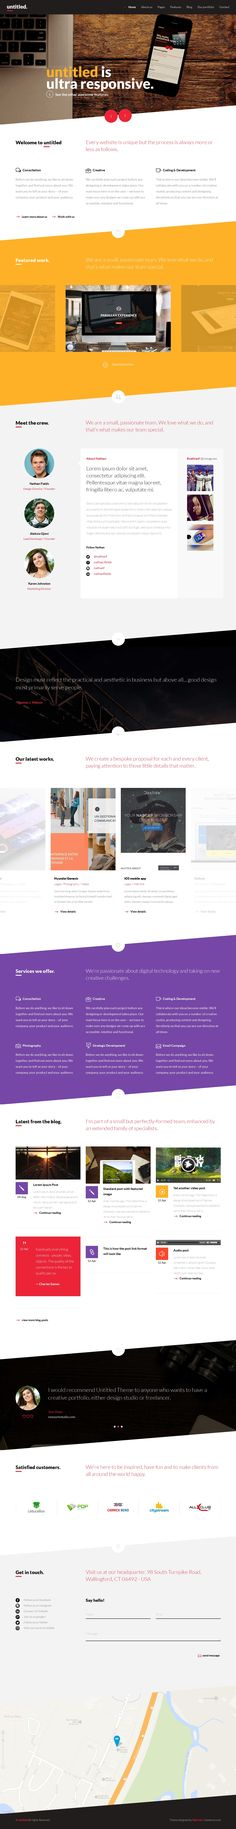 Untitled - Creative Multipurpose WordPress Theme #web #design